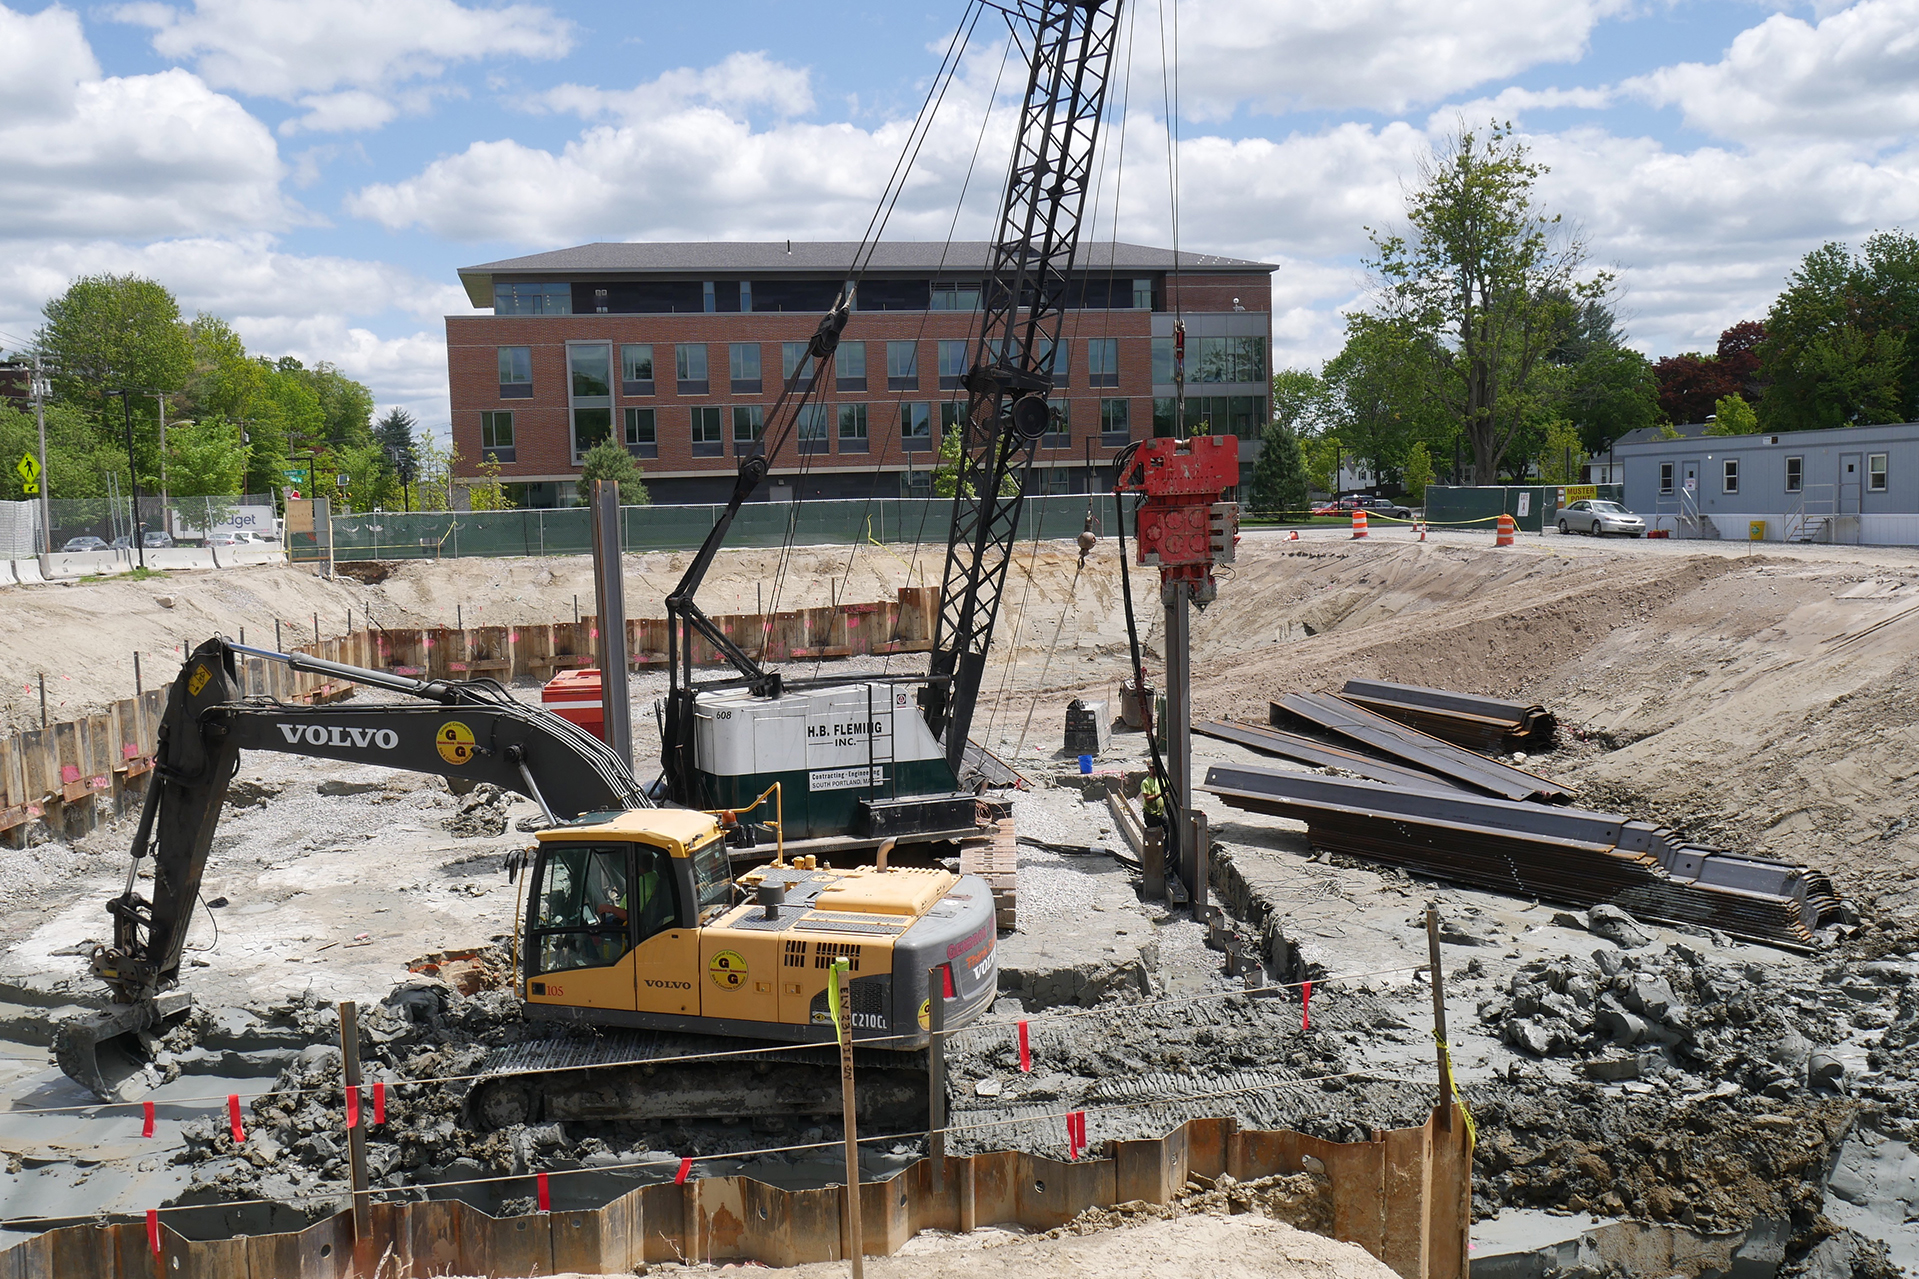 It's full-tilt action in the science building foundation hole on June 4. Suspended from the Fleming Inc. crane, the red vibro hammer is driving a sheet pile at a secondary excavation. Meanwhile, the yellow power shovel is removing clay that it will dump in a heap, not to be confused with a pile, for a second machine to load into a truck. (Doug Hubley/Bates College)